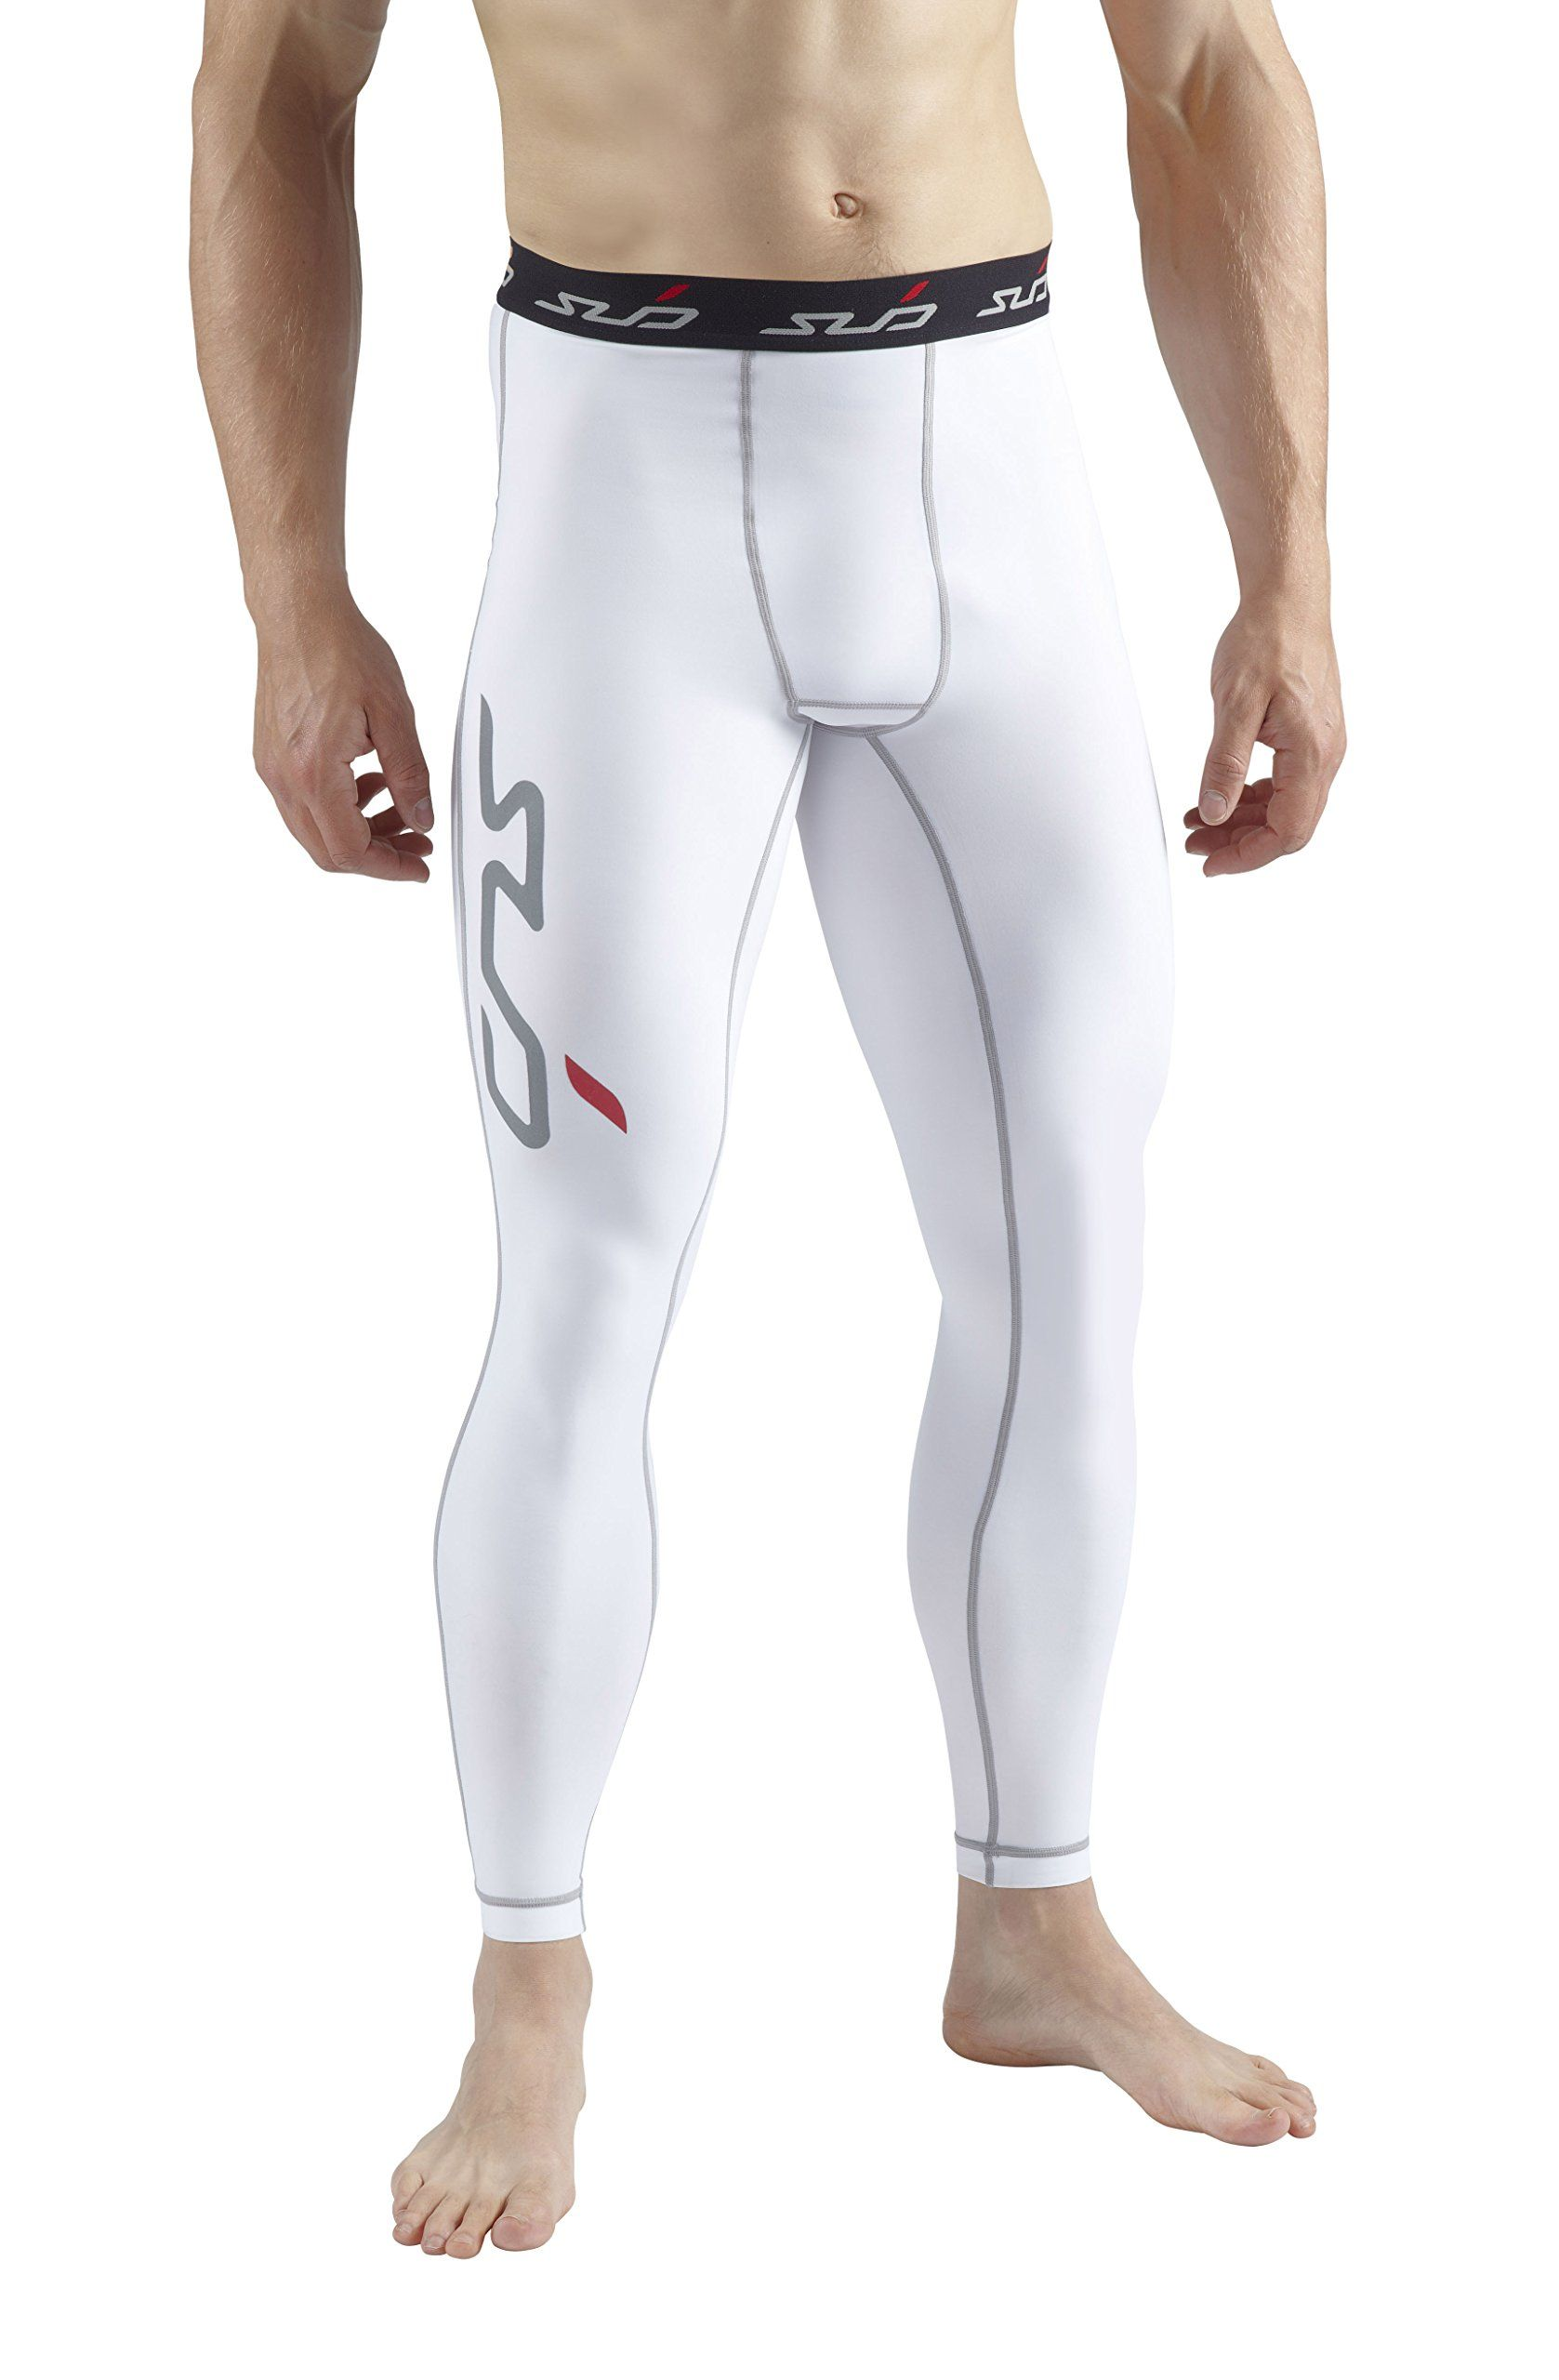 d4c5c94b4fe3a Amazon.com: Sub Sports DUAL Men's Compression Base layer Leggings / Tights:  Sports & Outdoors